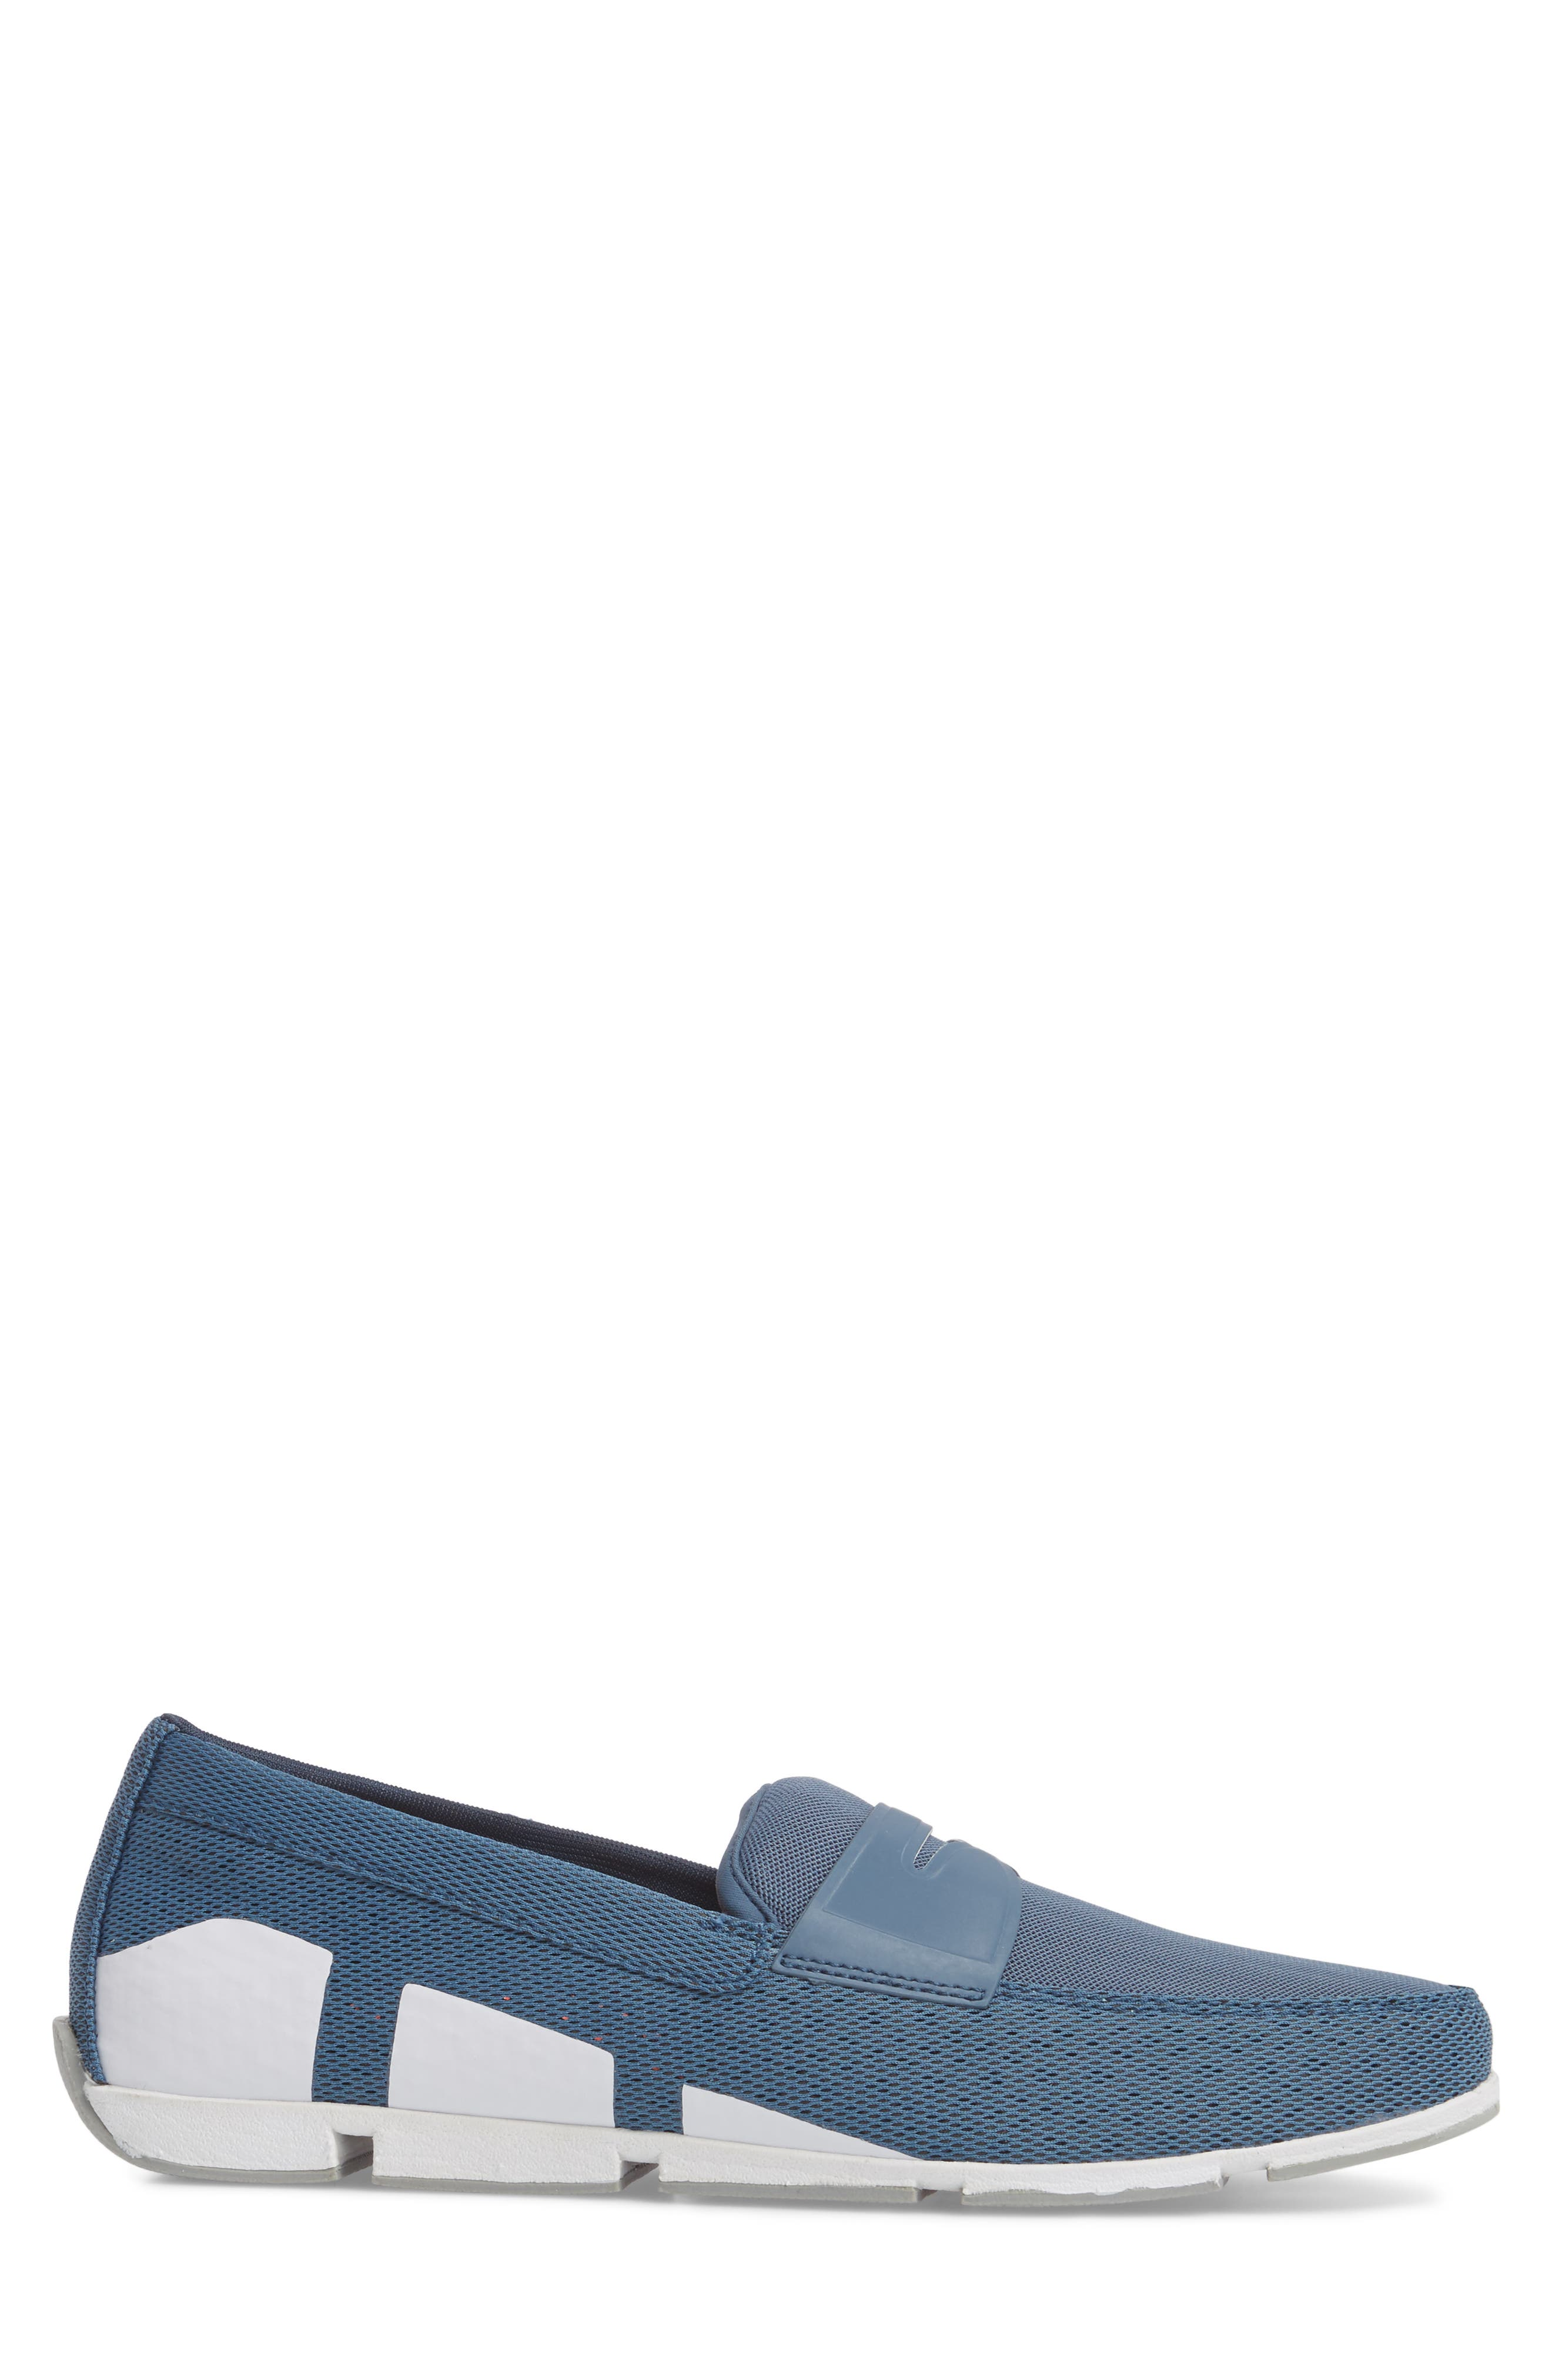 Breeze Penny Loafer,                             Alternate thumbnail 3, color,                             SLATE/ WHITE/ GREY FABRIC